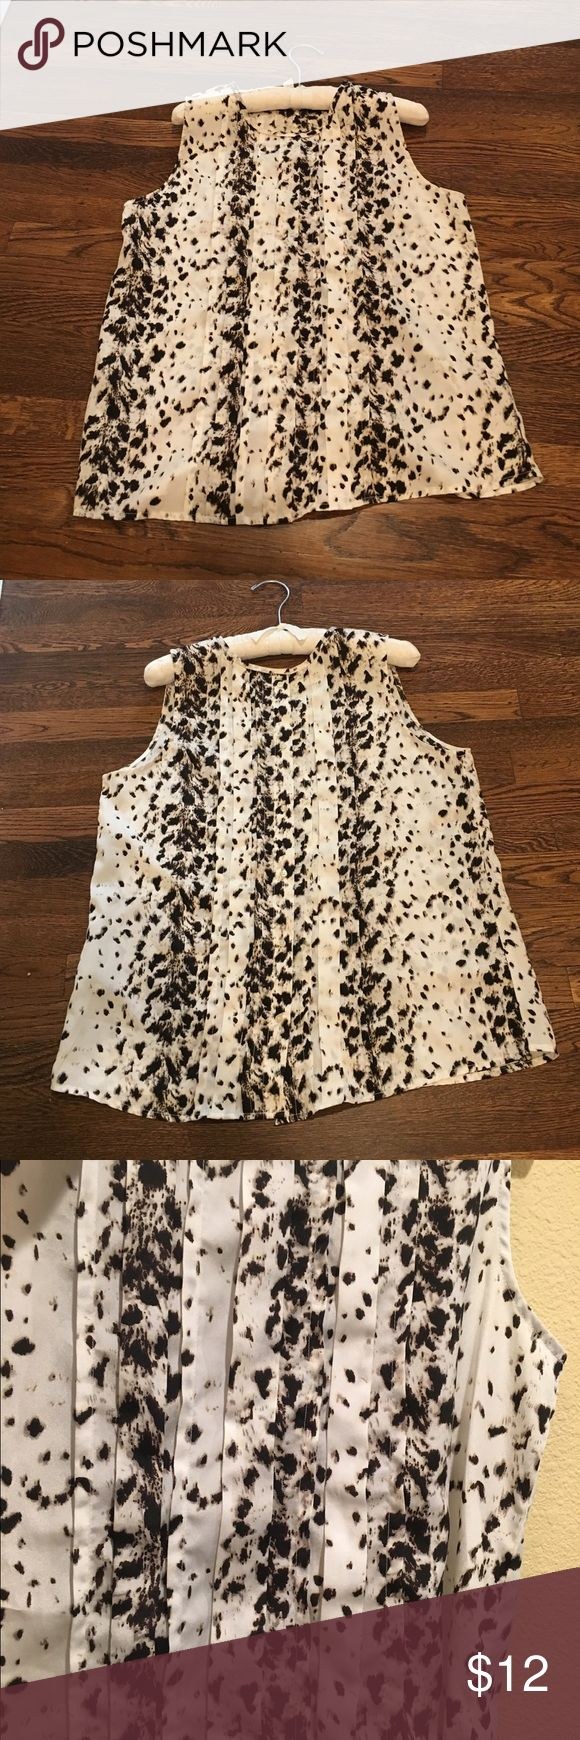 Animal print sleeveless top Airy sleeveless top.  Says Medium, fits like a large.  Pleats in front, buttons up the back... Can really just pull over your head Tops